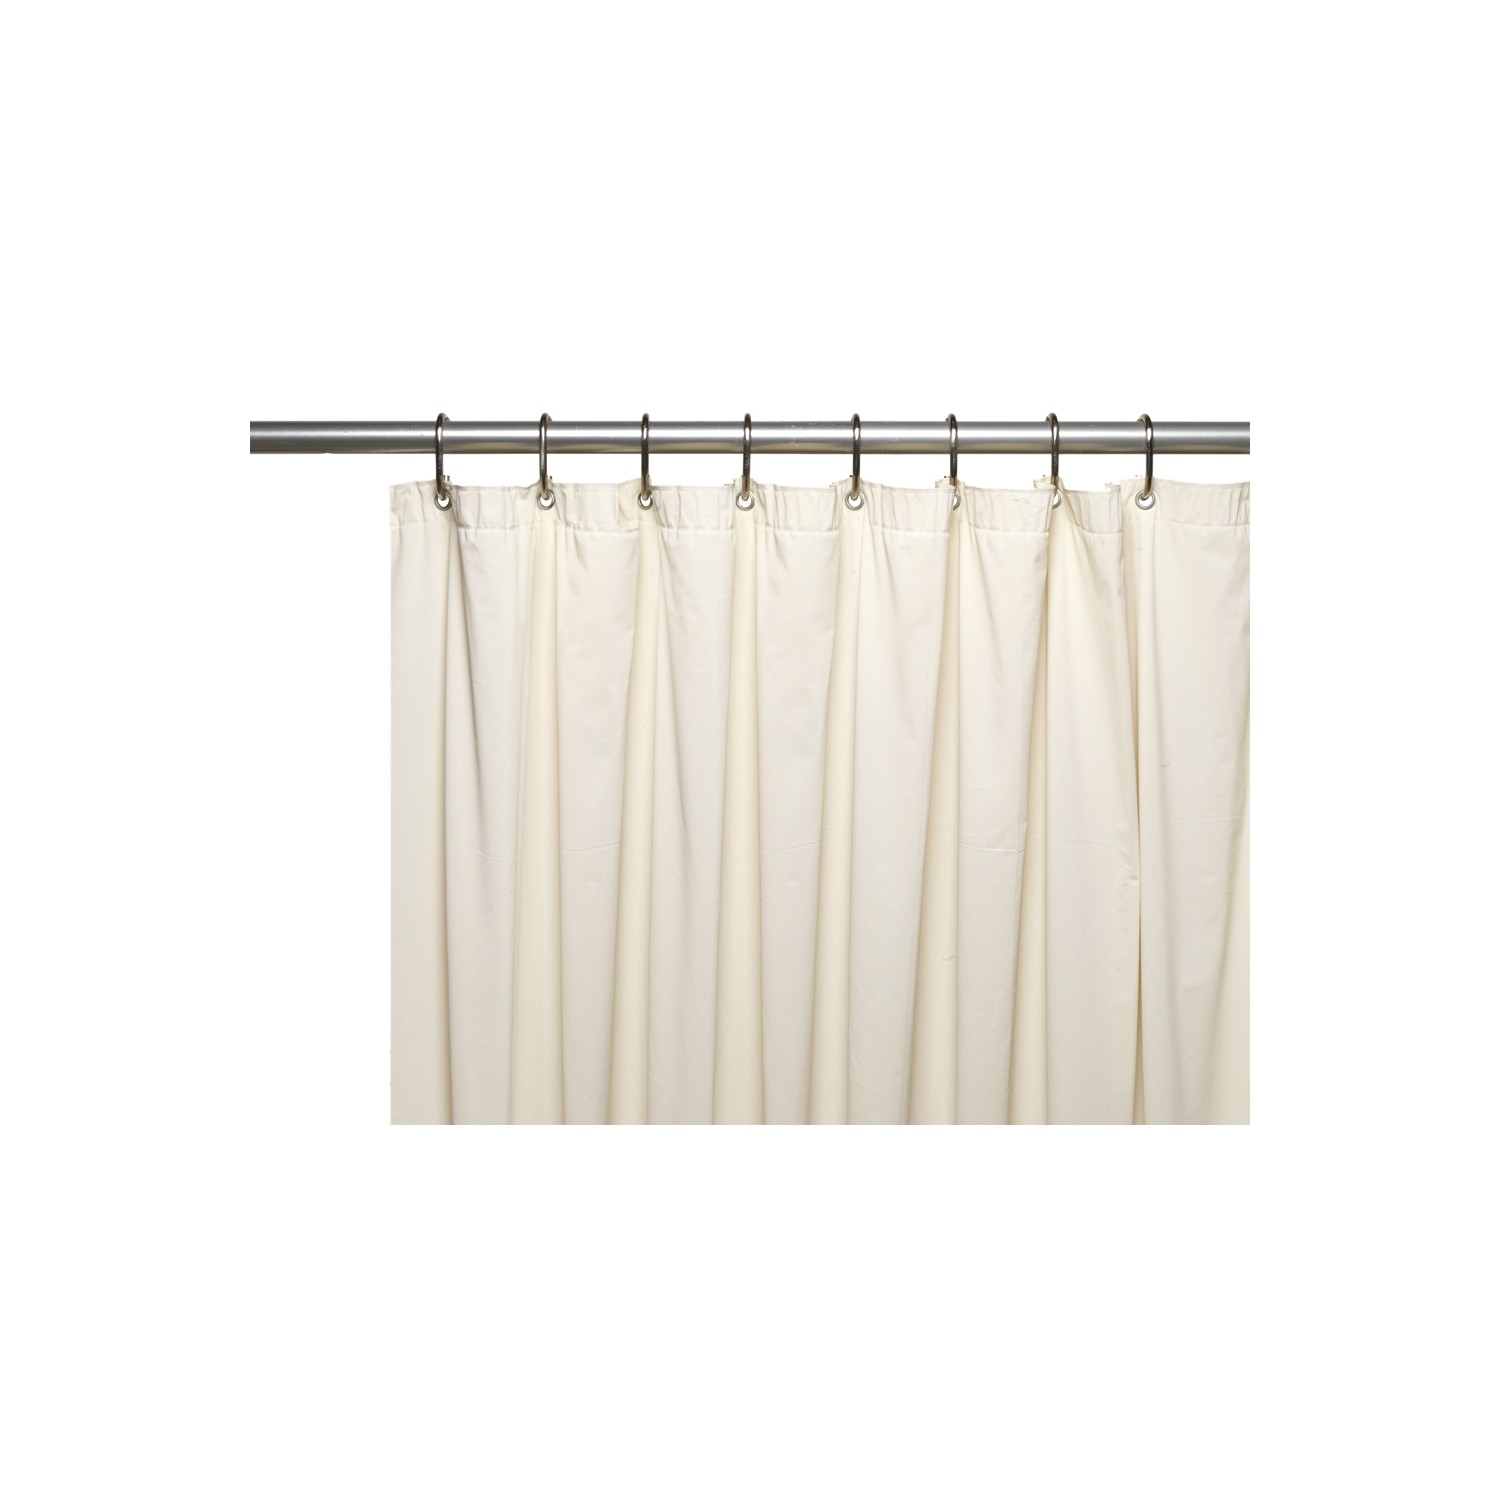 American Crafts 8 Gauge Hotel Collection Vinyl Shower Curtain Liner With Metal Grommets